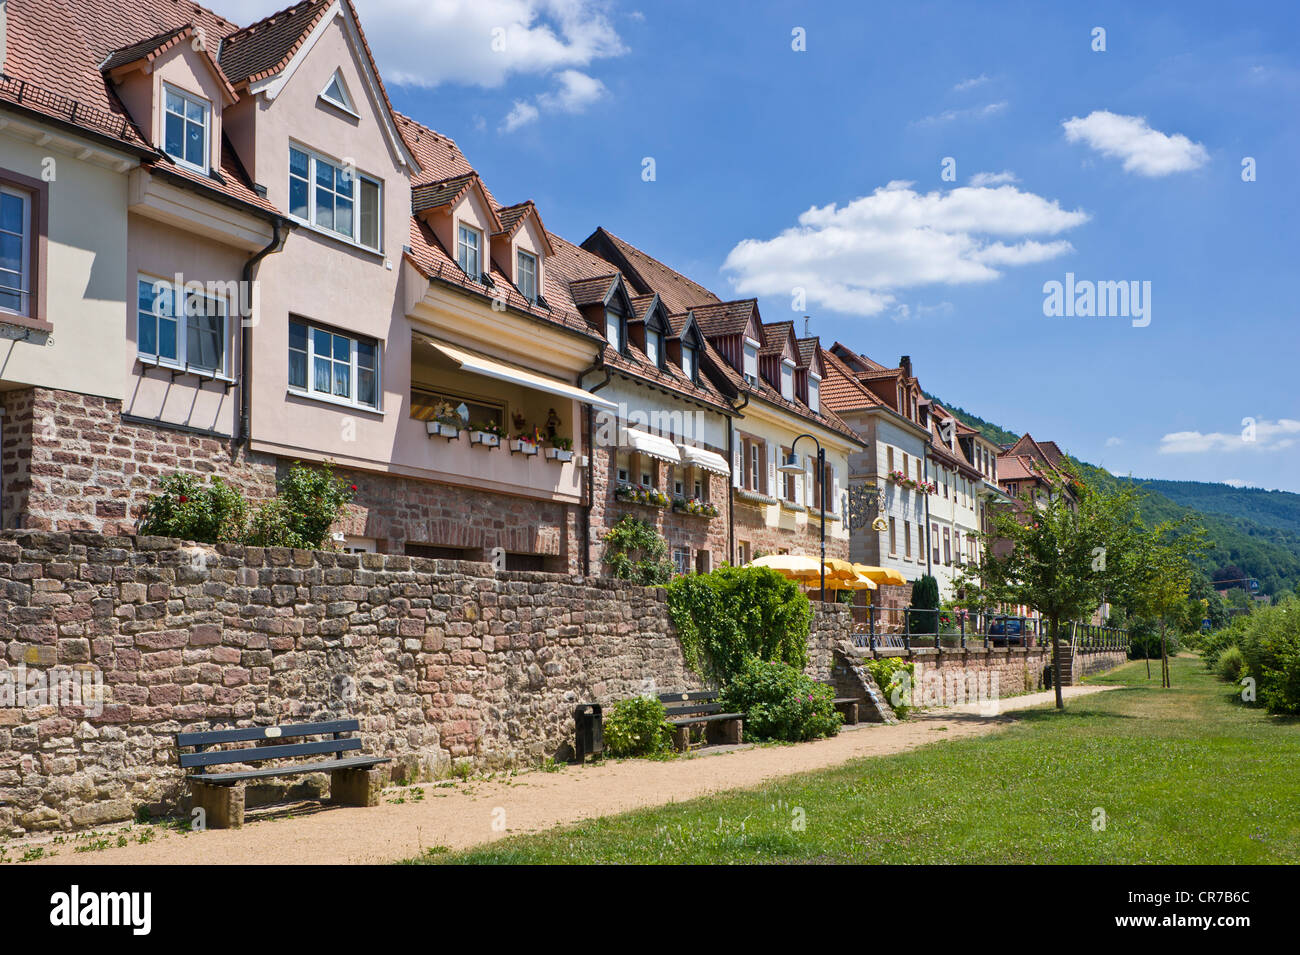 eberbach neckar stock photos eberbach neckar stock images alamy. Black Bedroom Furniture Sets. Home Design Ideas